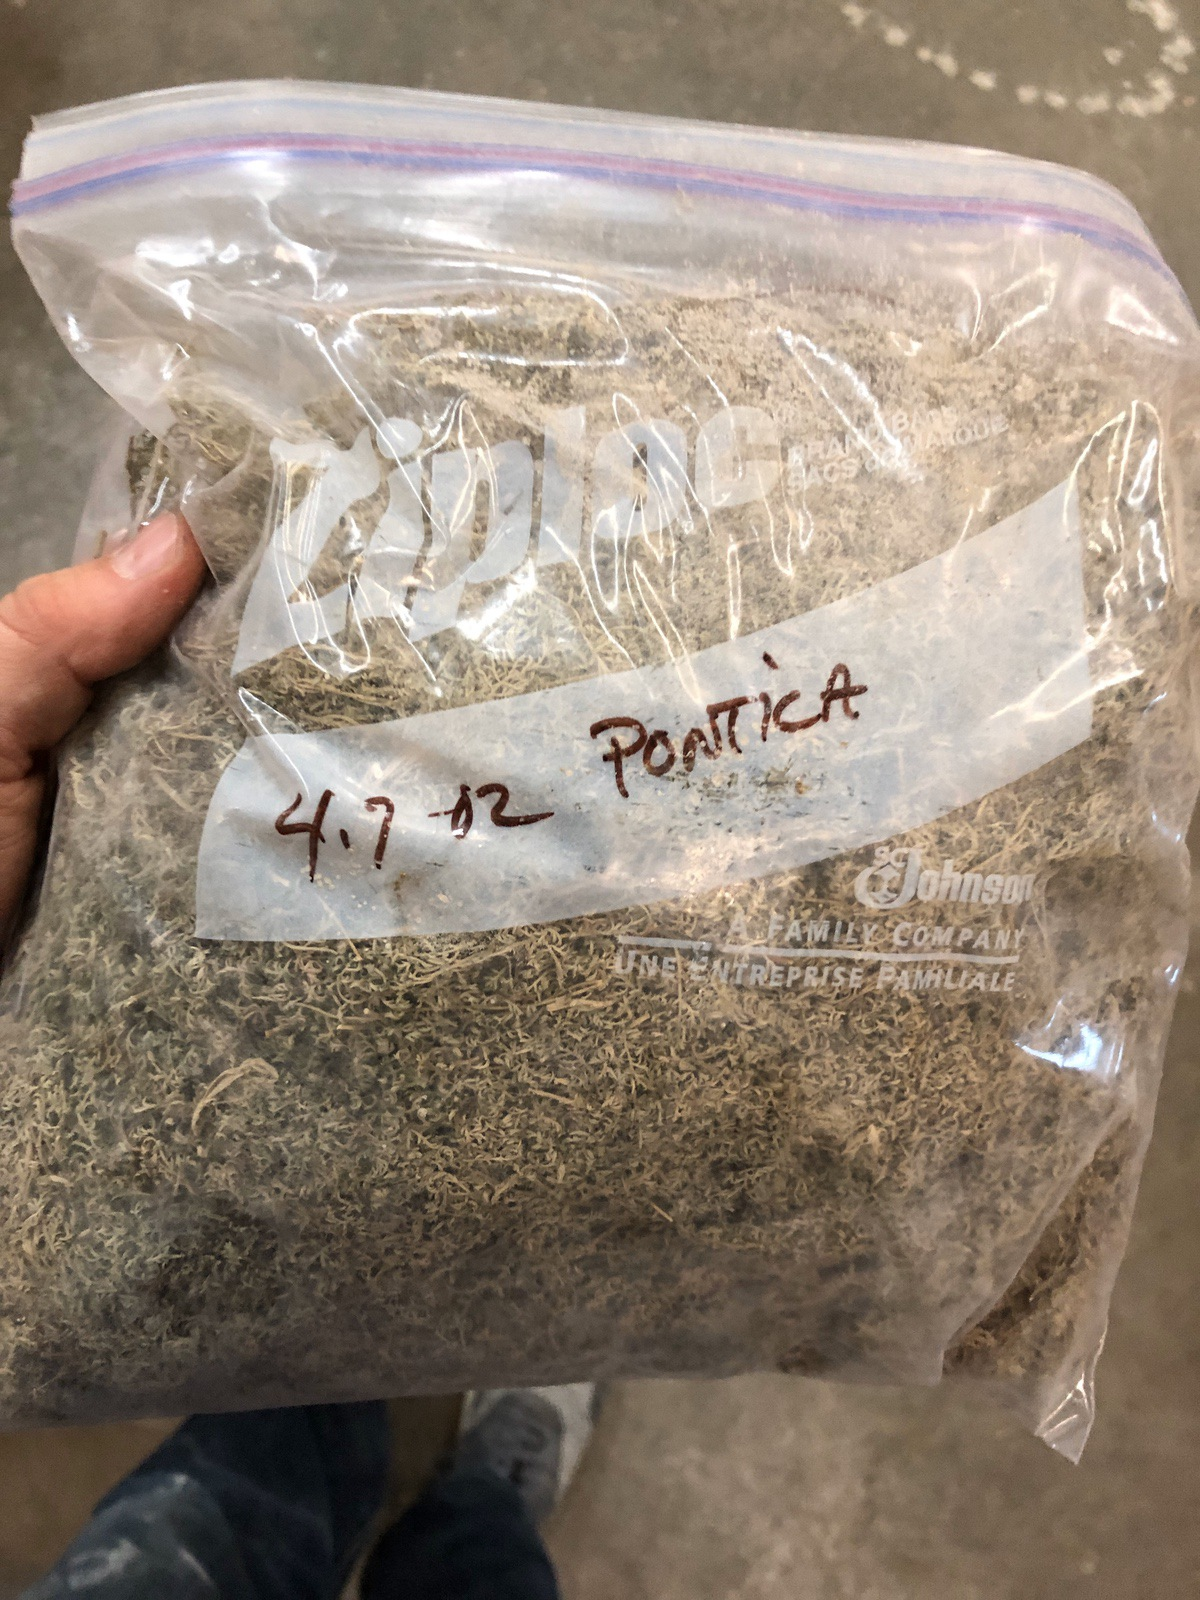 Lot of Herbs and Botanicals: Ponitica, Wormwood Herb C/S (Weight to be Provided | Rig Fee: $20 or HC - Image 14 of 14